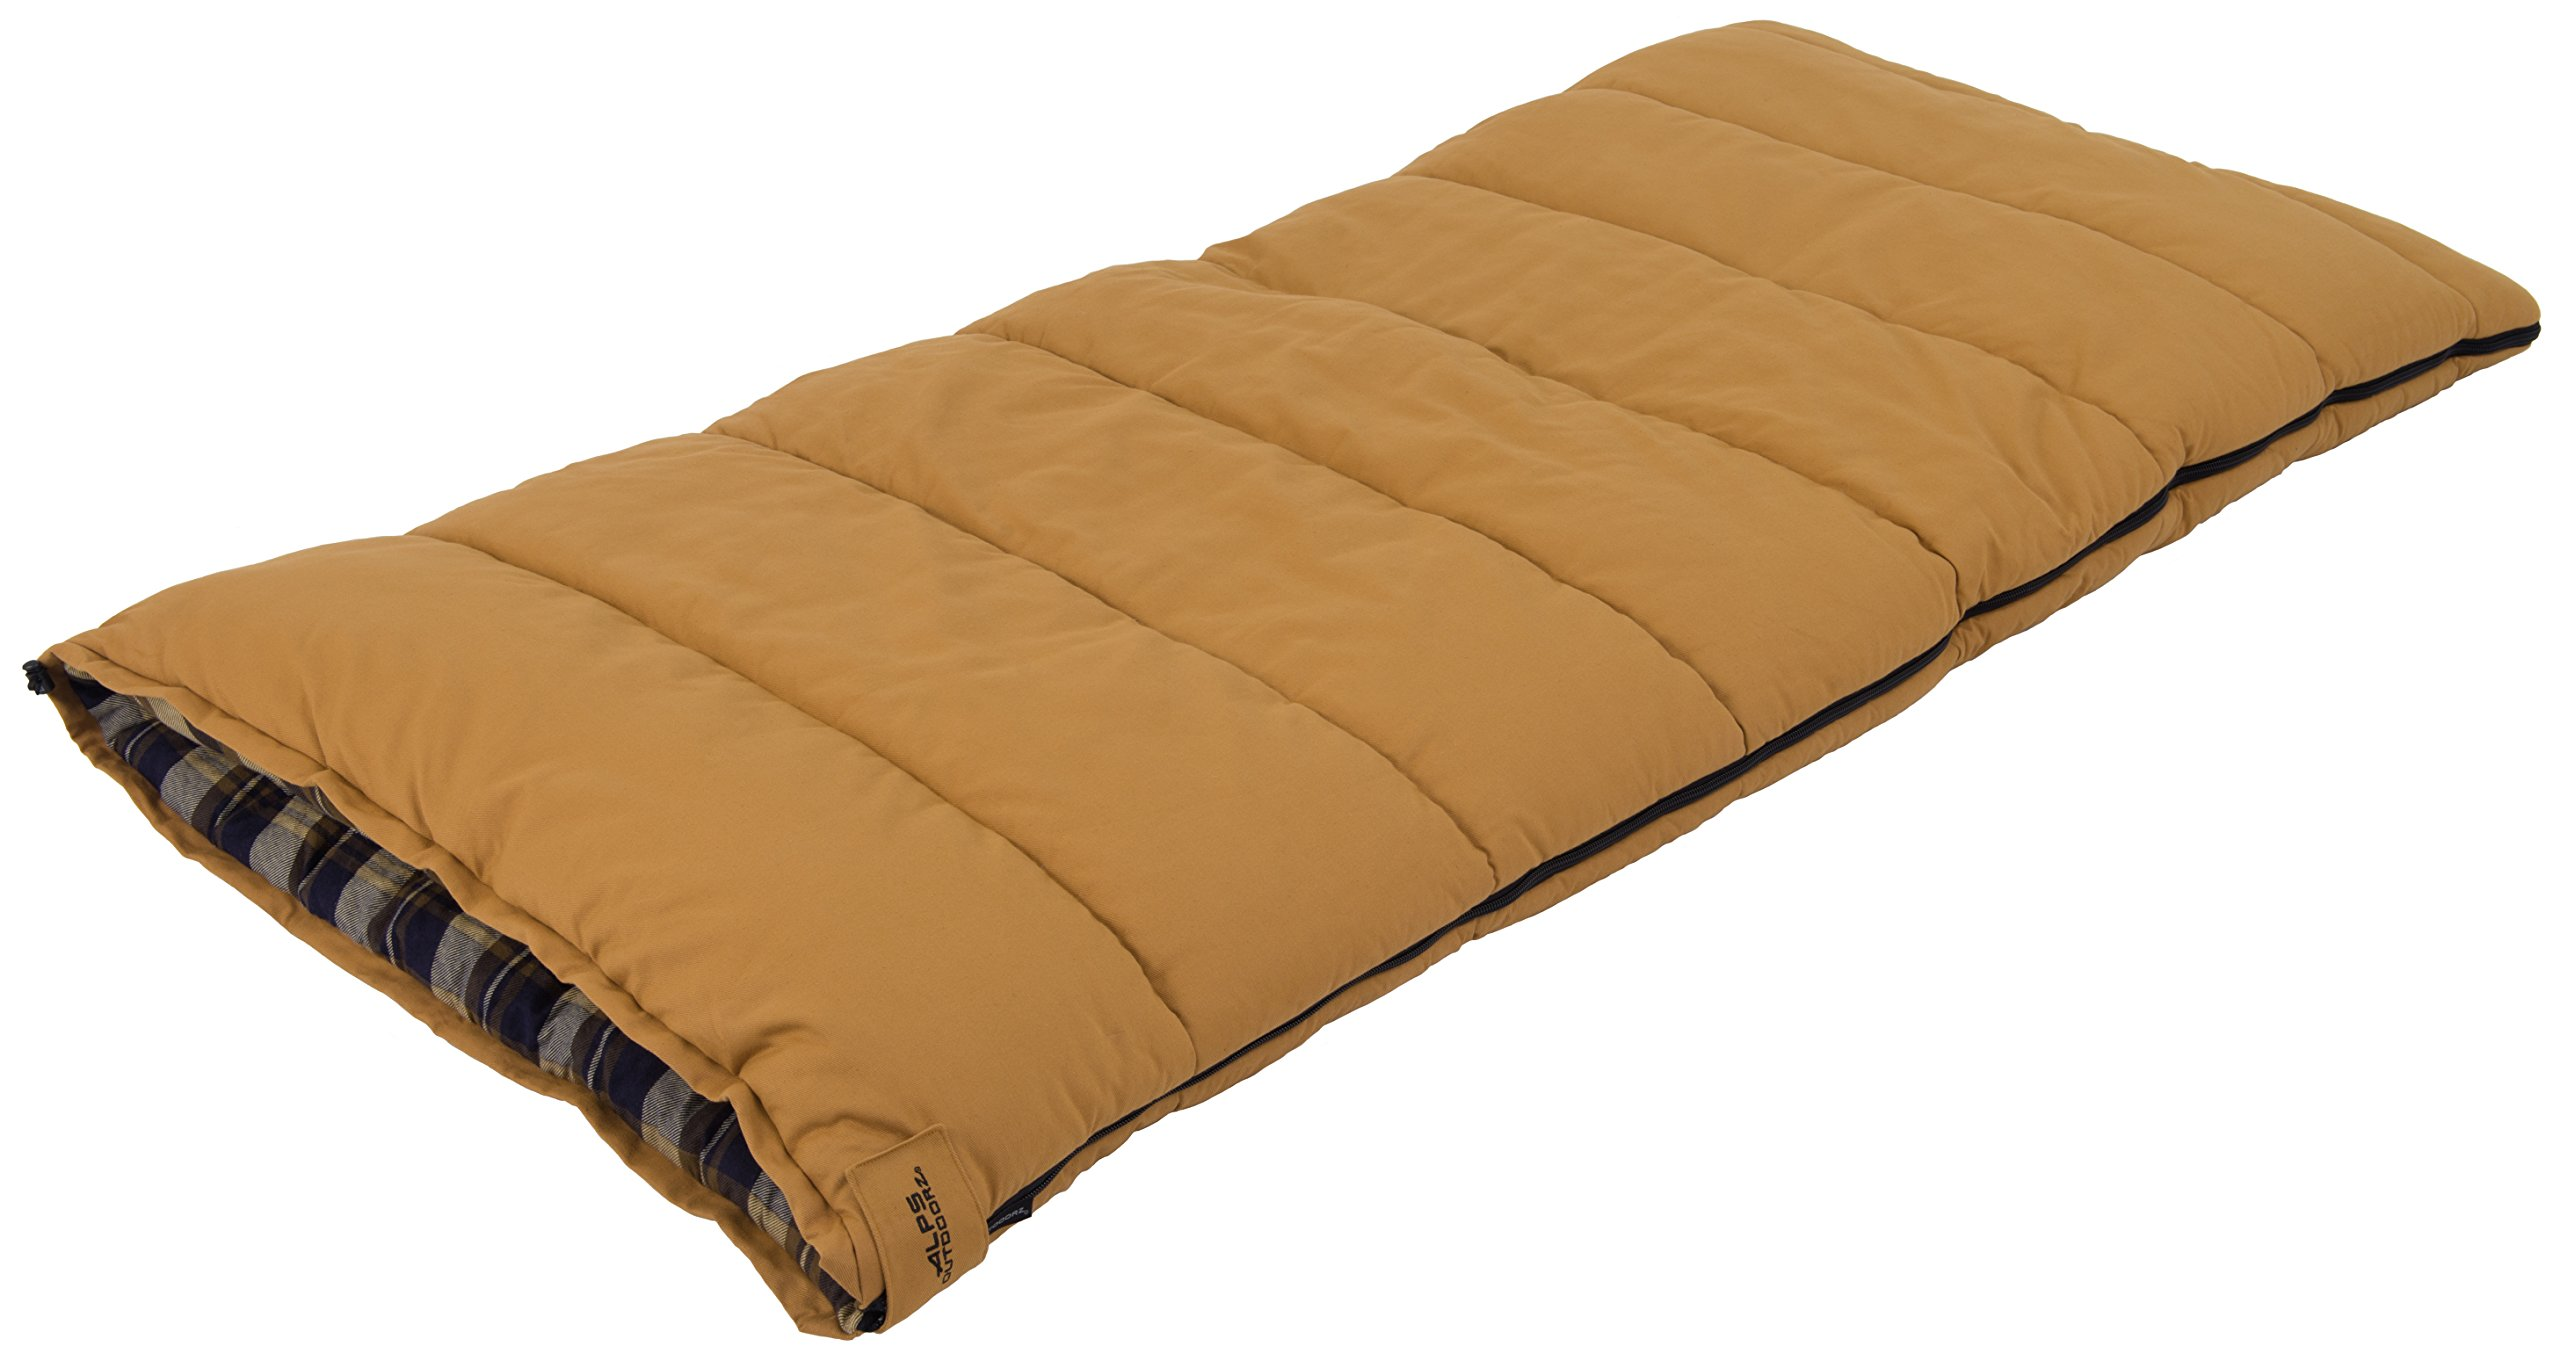 ALPS OutdoorZ Redwood -25 Sleeping Bag by ALPS OutdoorZ (Image #2)